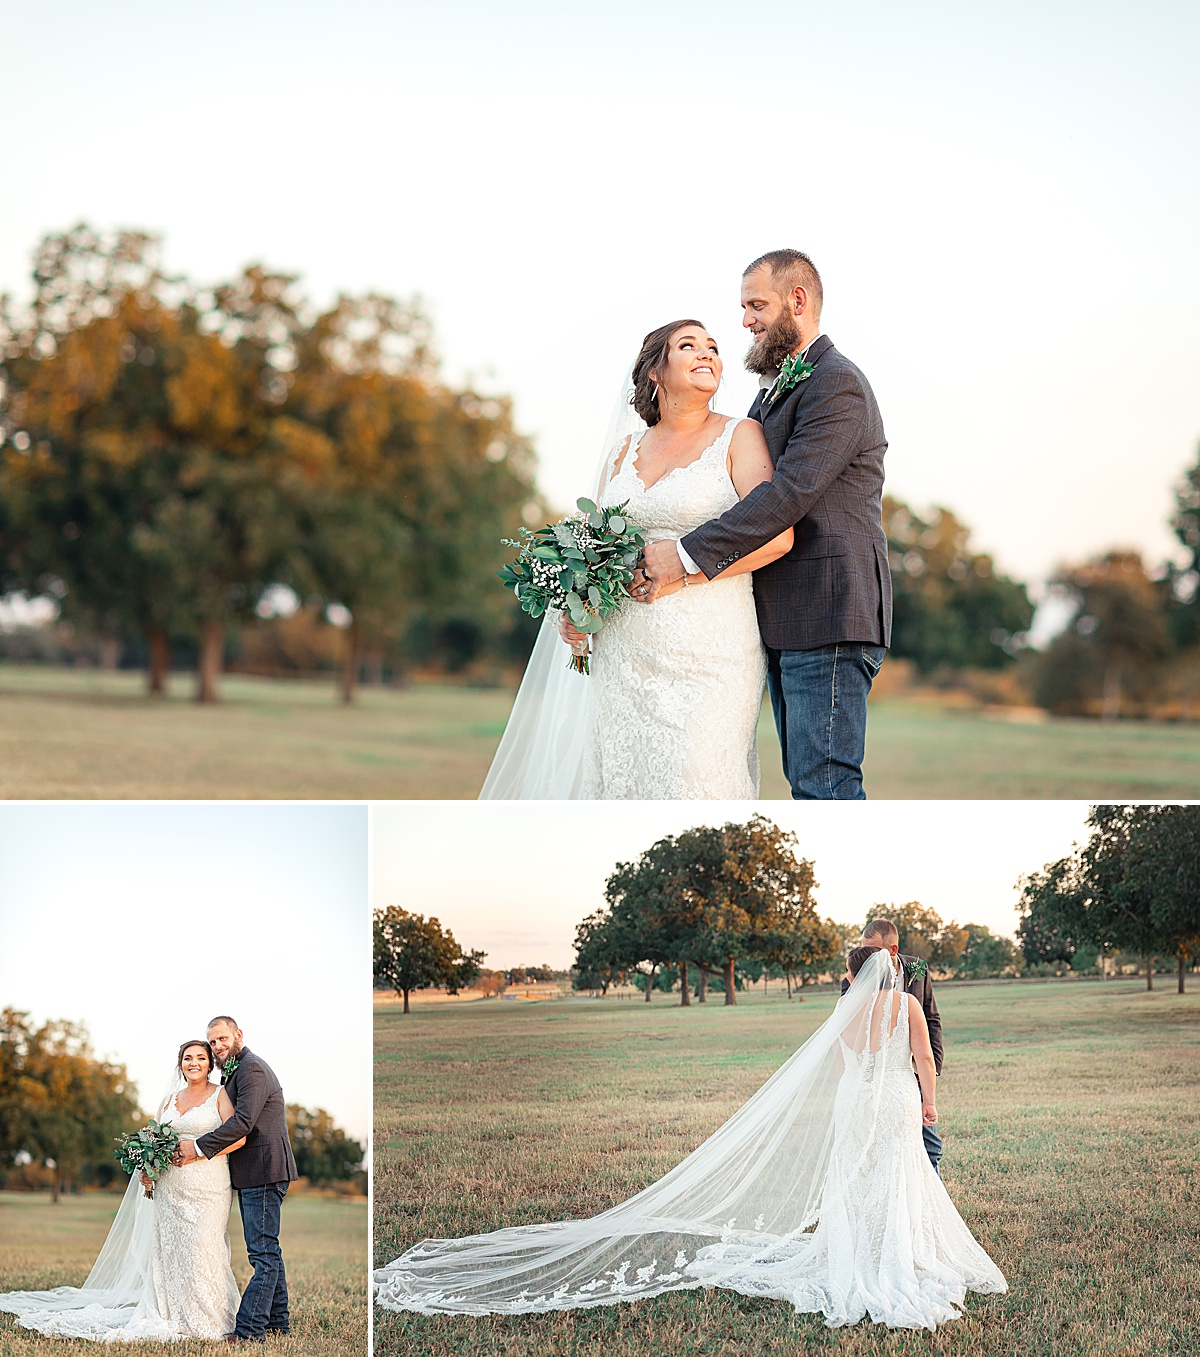 Rustic-Texas-Wedding-Hollow-Creek-Ranch-Carly-Barton-Photography_0089.jpg